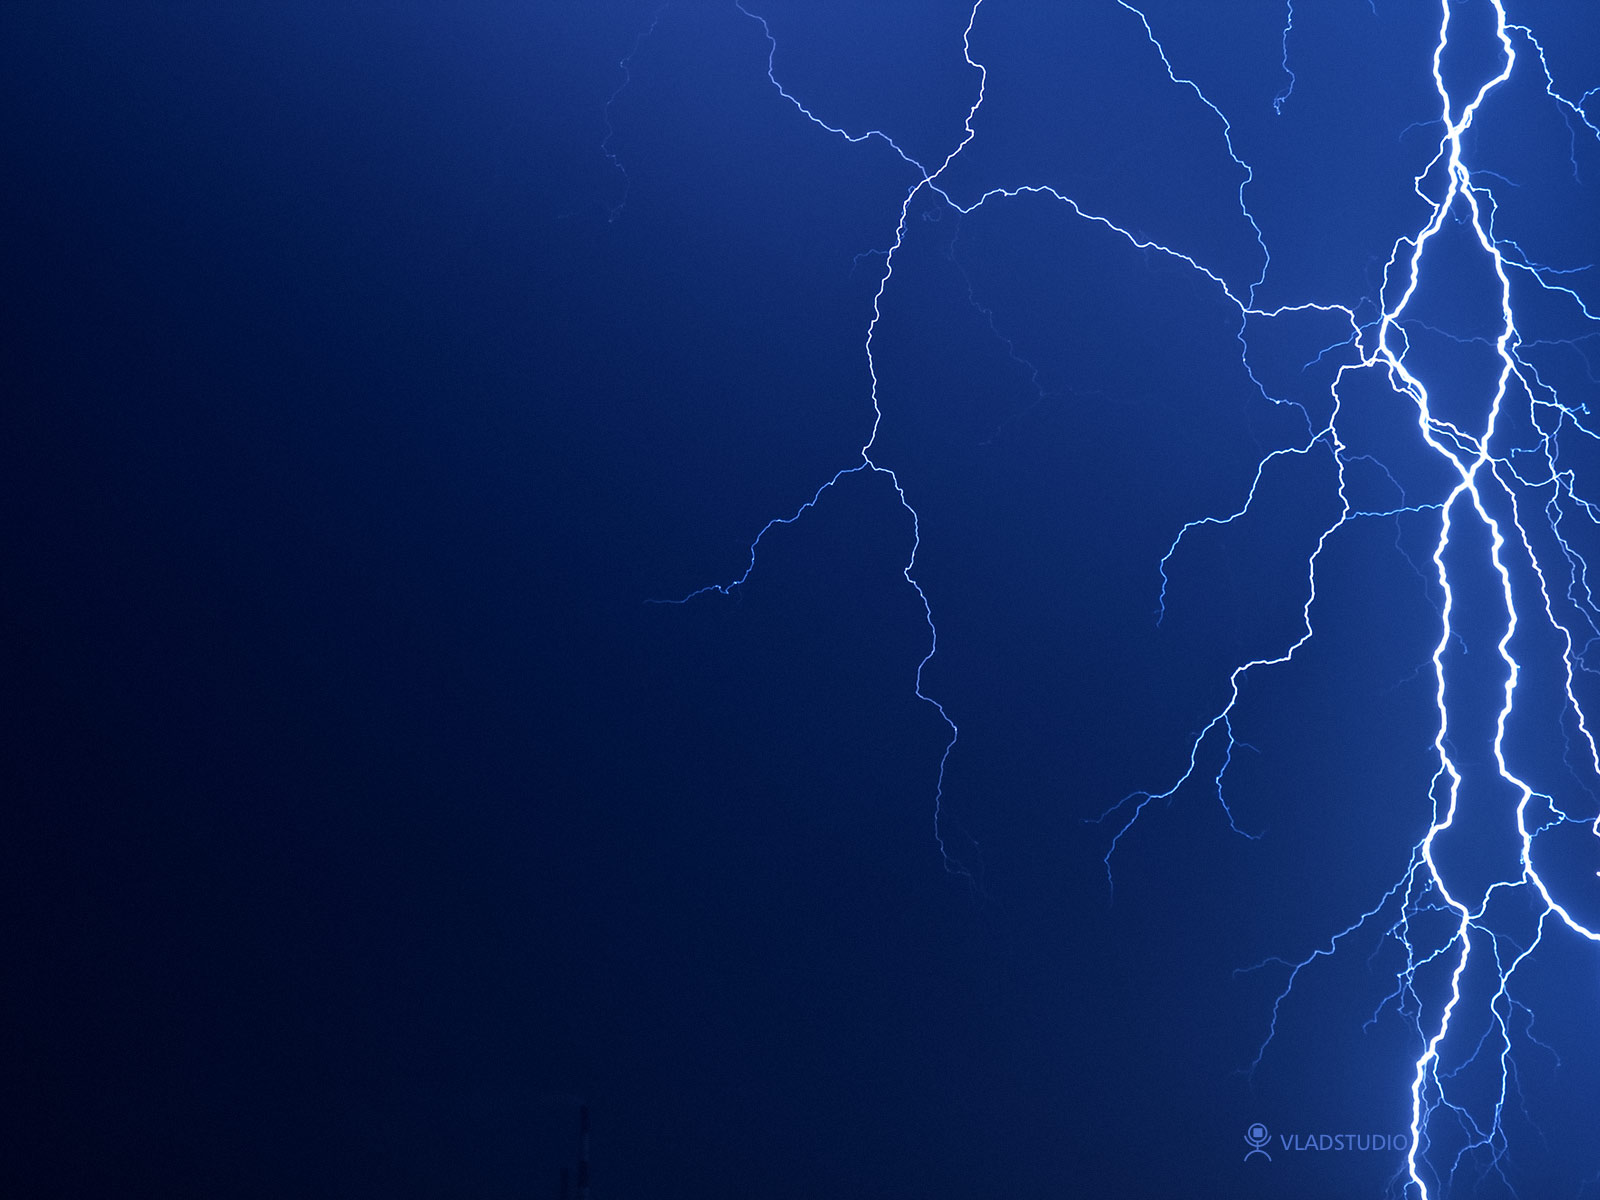 Thunder by vladstudio